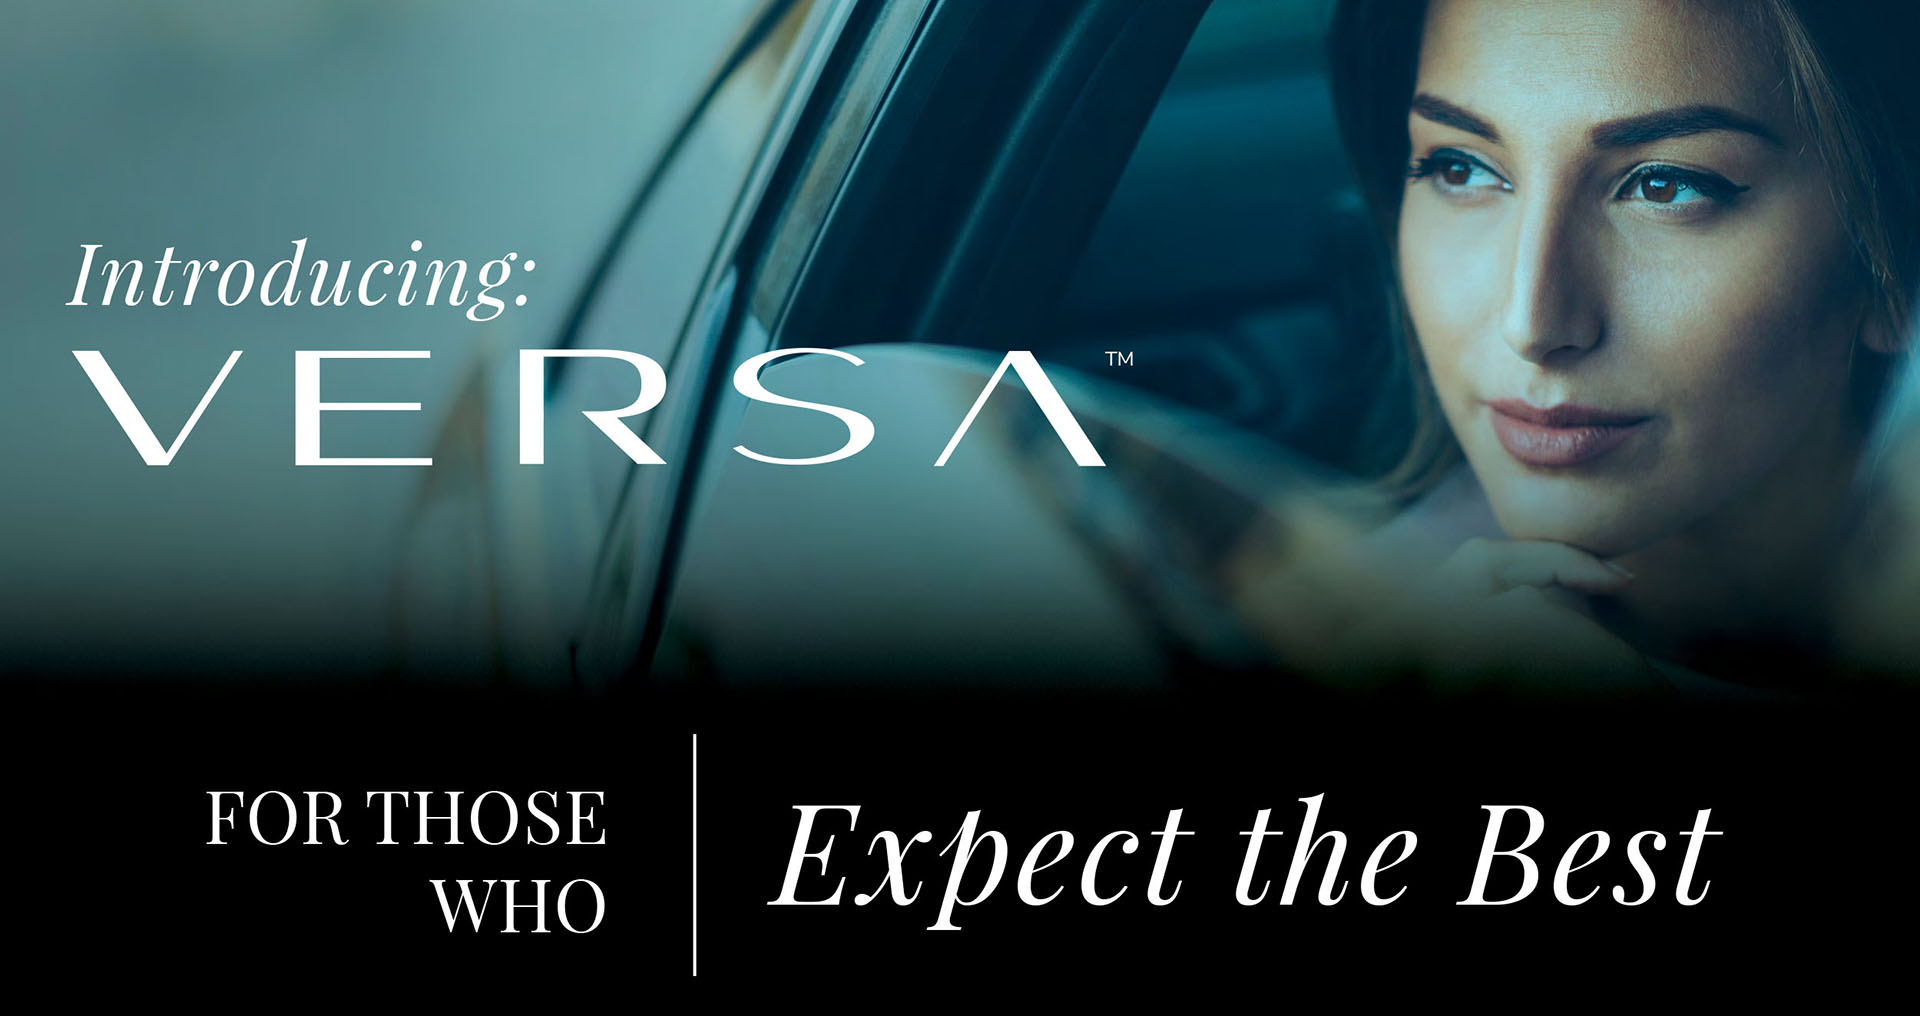 Introducing: Versa. For those who expect the best